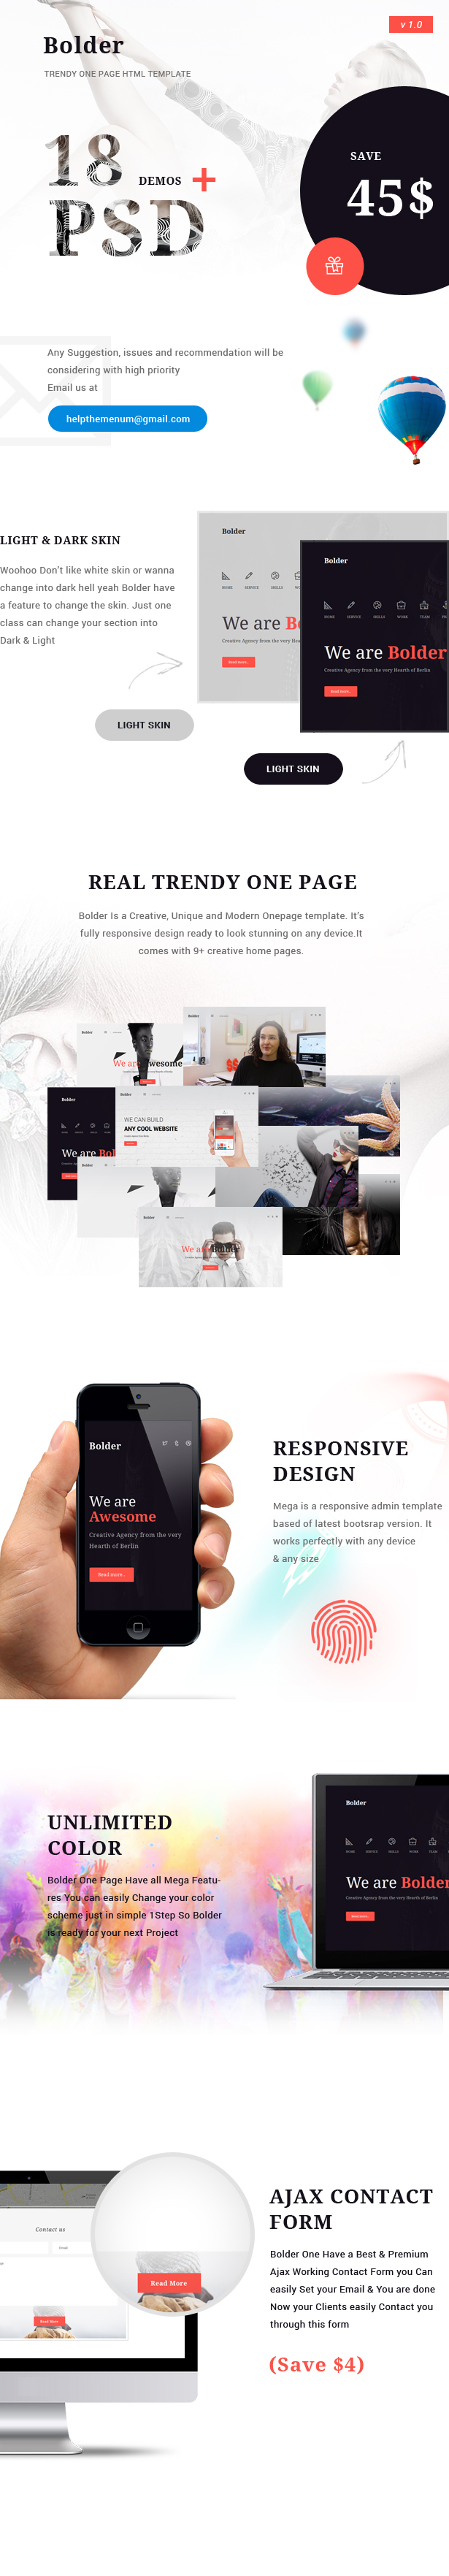 Bolder - Trendy One Page Multipurpose Template